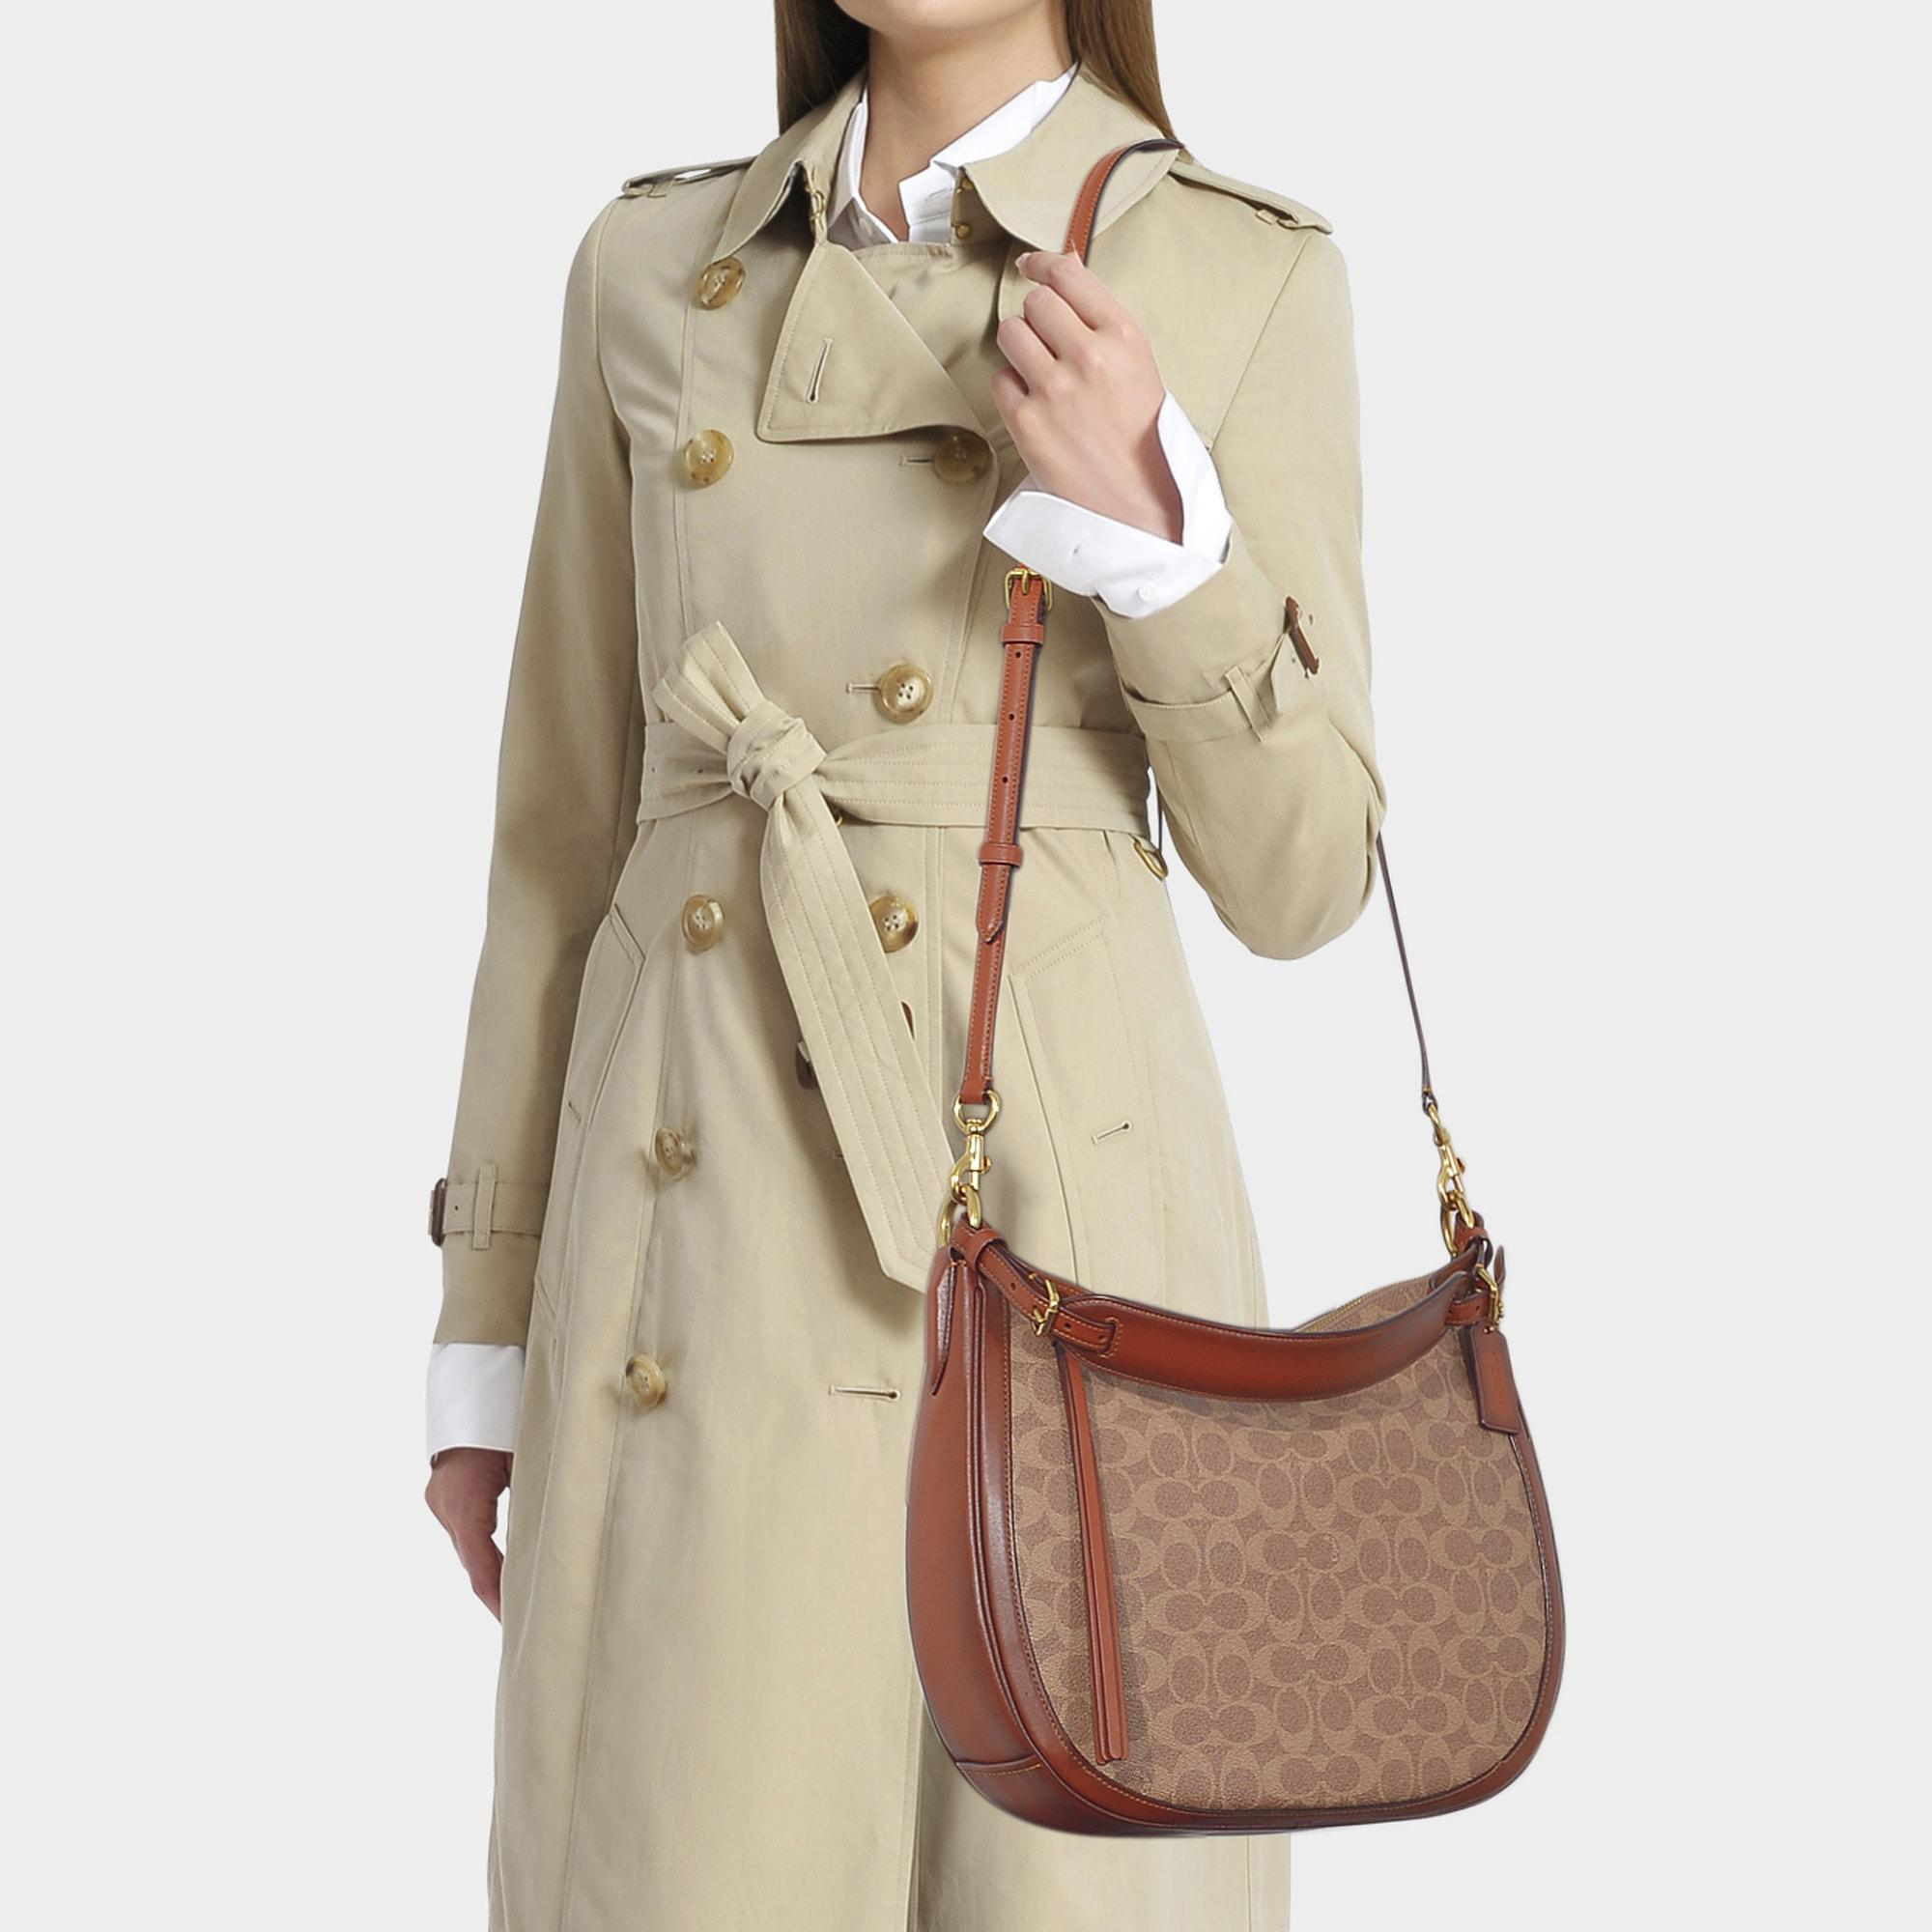 7c59c386f663 COACH - Natural Coated Canvas Signature Sutton Hobo Bag In Brown Canvas -  Lyst. View fullscreen